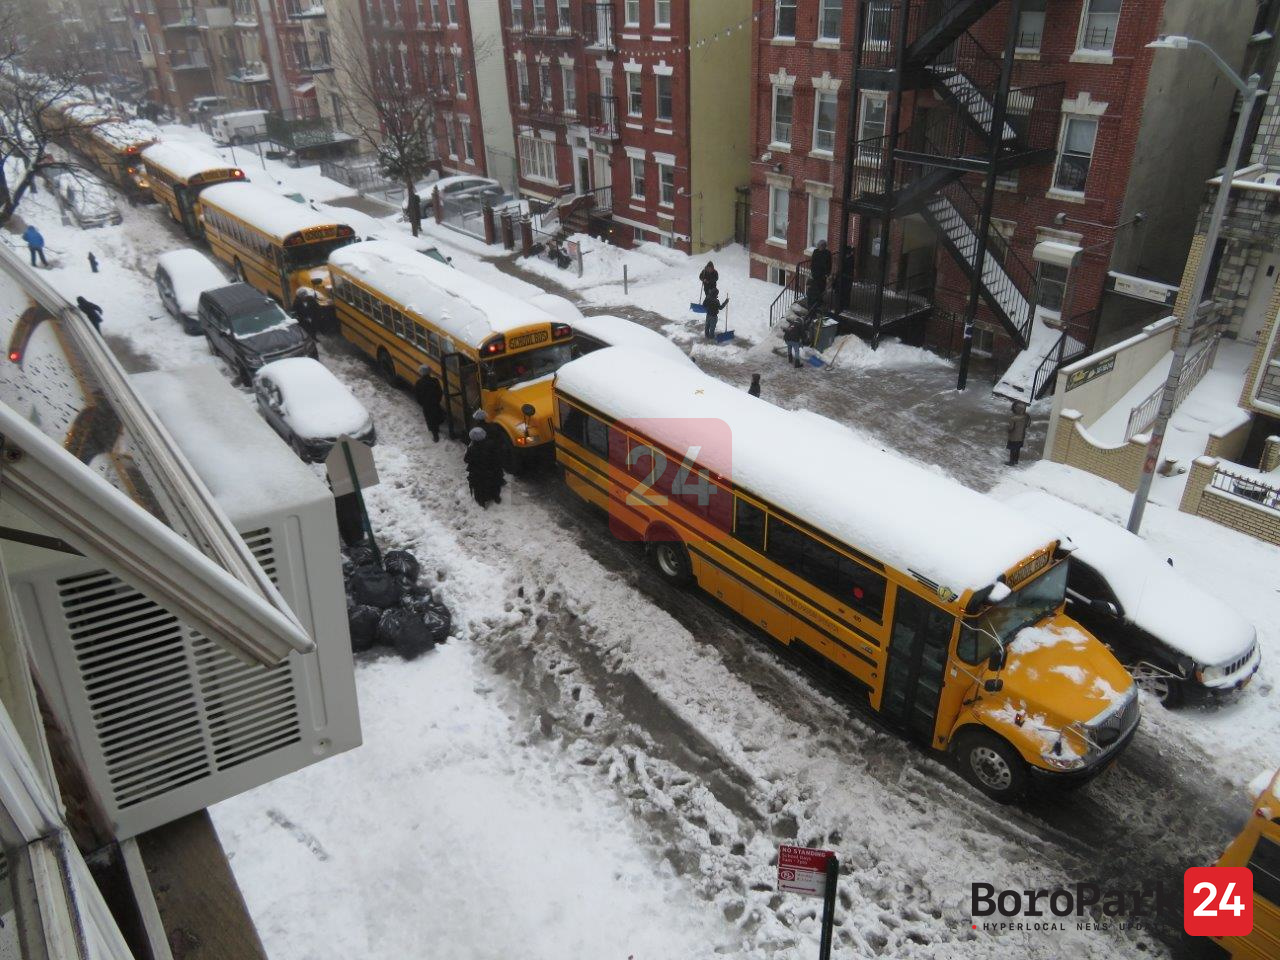 No More Snow Days for NYC Students